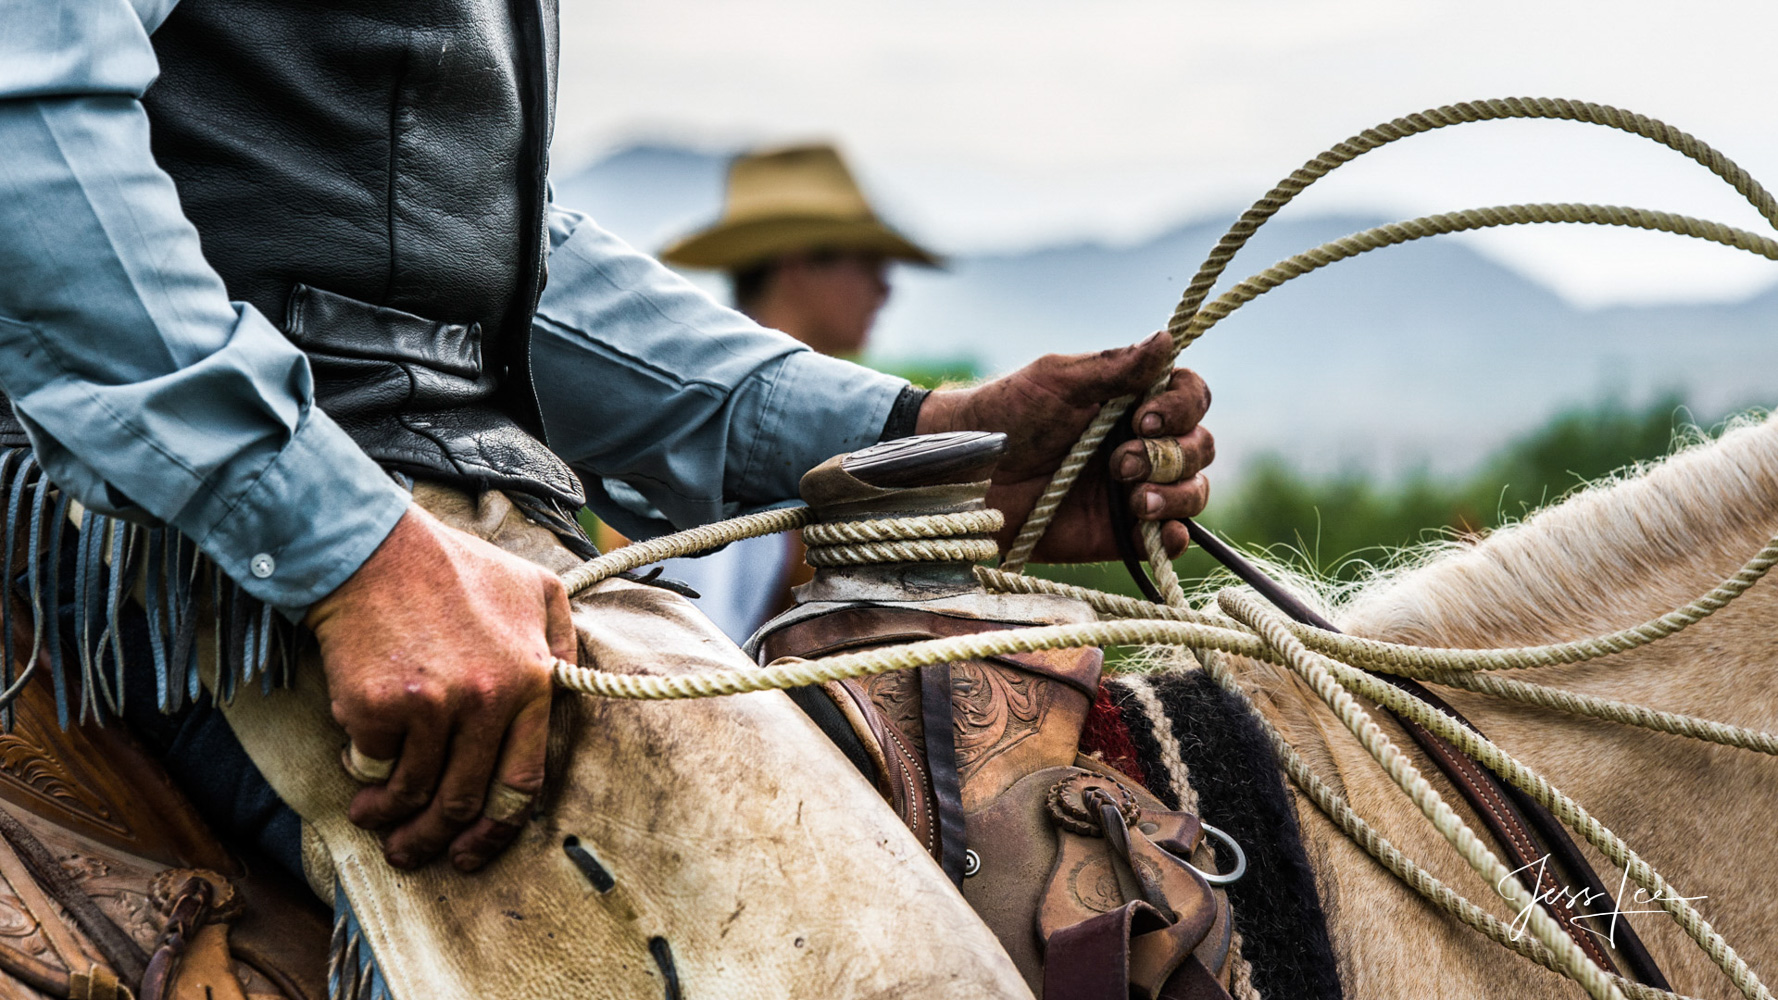 Working Cowboy Photos Wyoming cowboys hands show what hard work means. While firmly holding his horse ready for action, the hands...